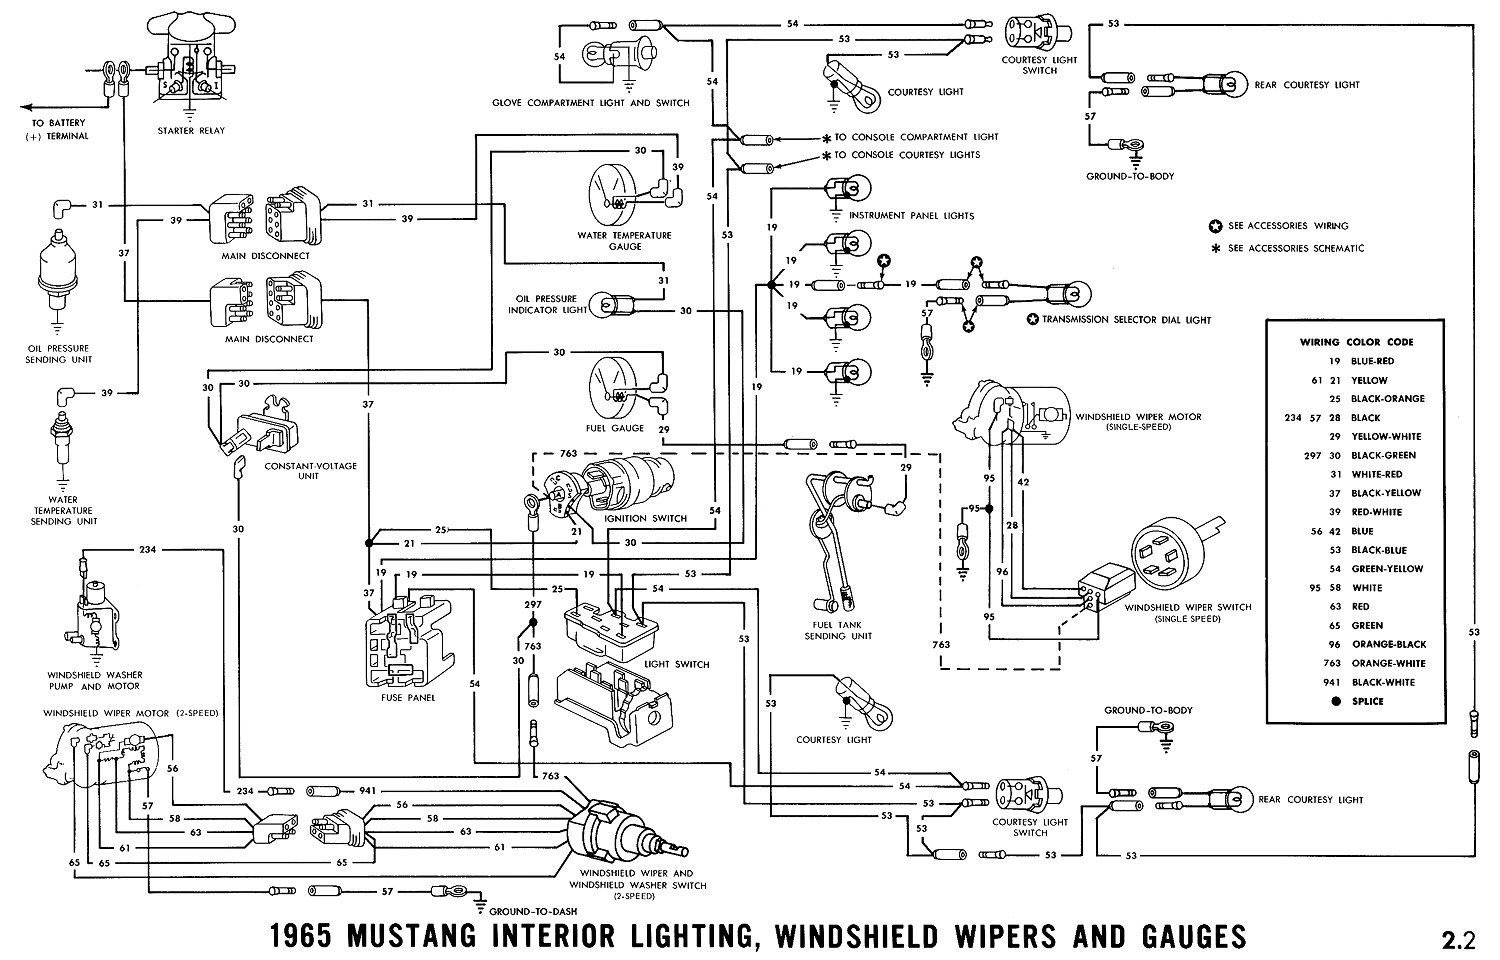 2002 Ford Mustang Fuse Panel Diagram Turn Signal Schematics Windstar Wiring 1965 Diagrams Average Joe Restoration 2004 Box